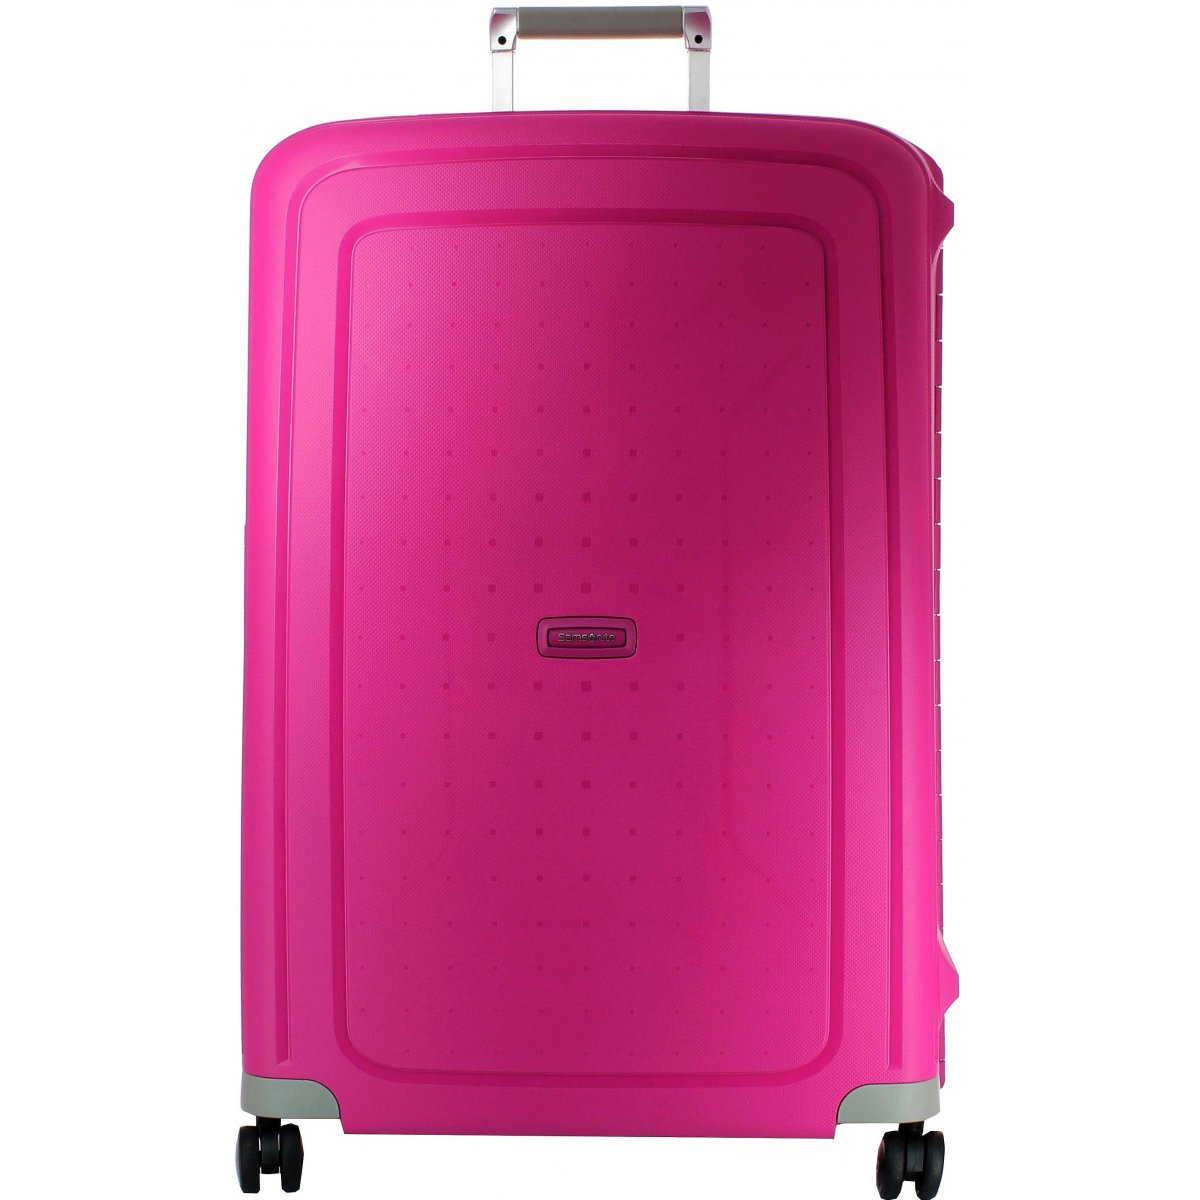 valise samsonite s cure spinner 75 cm scure08 couleur principale fushia promotion. Black Bedroom Furniture Sets. Home Design Ideas